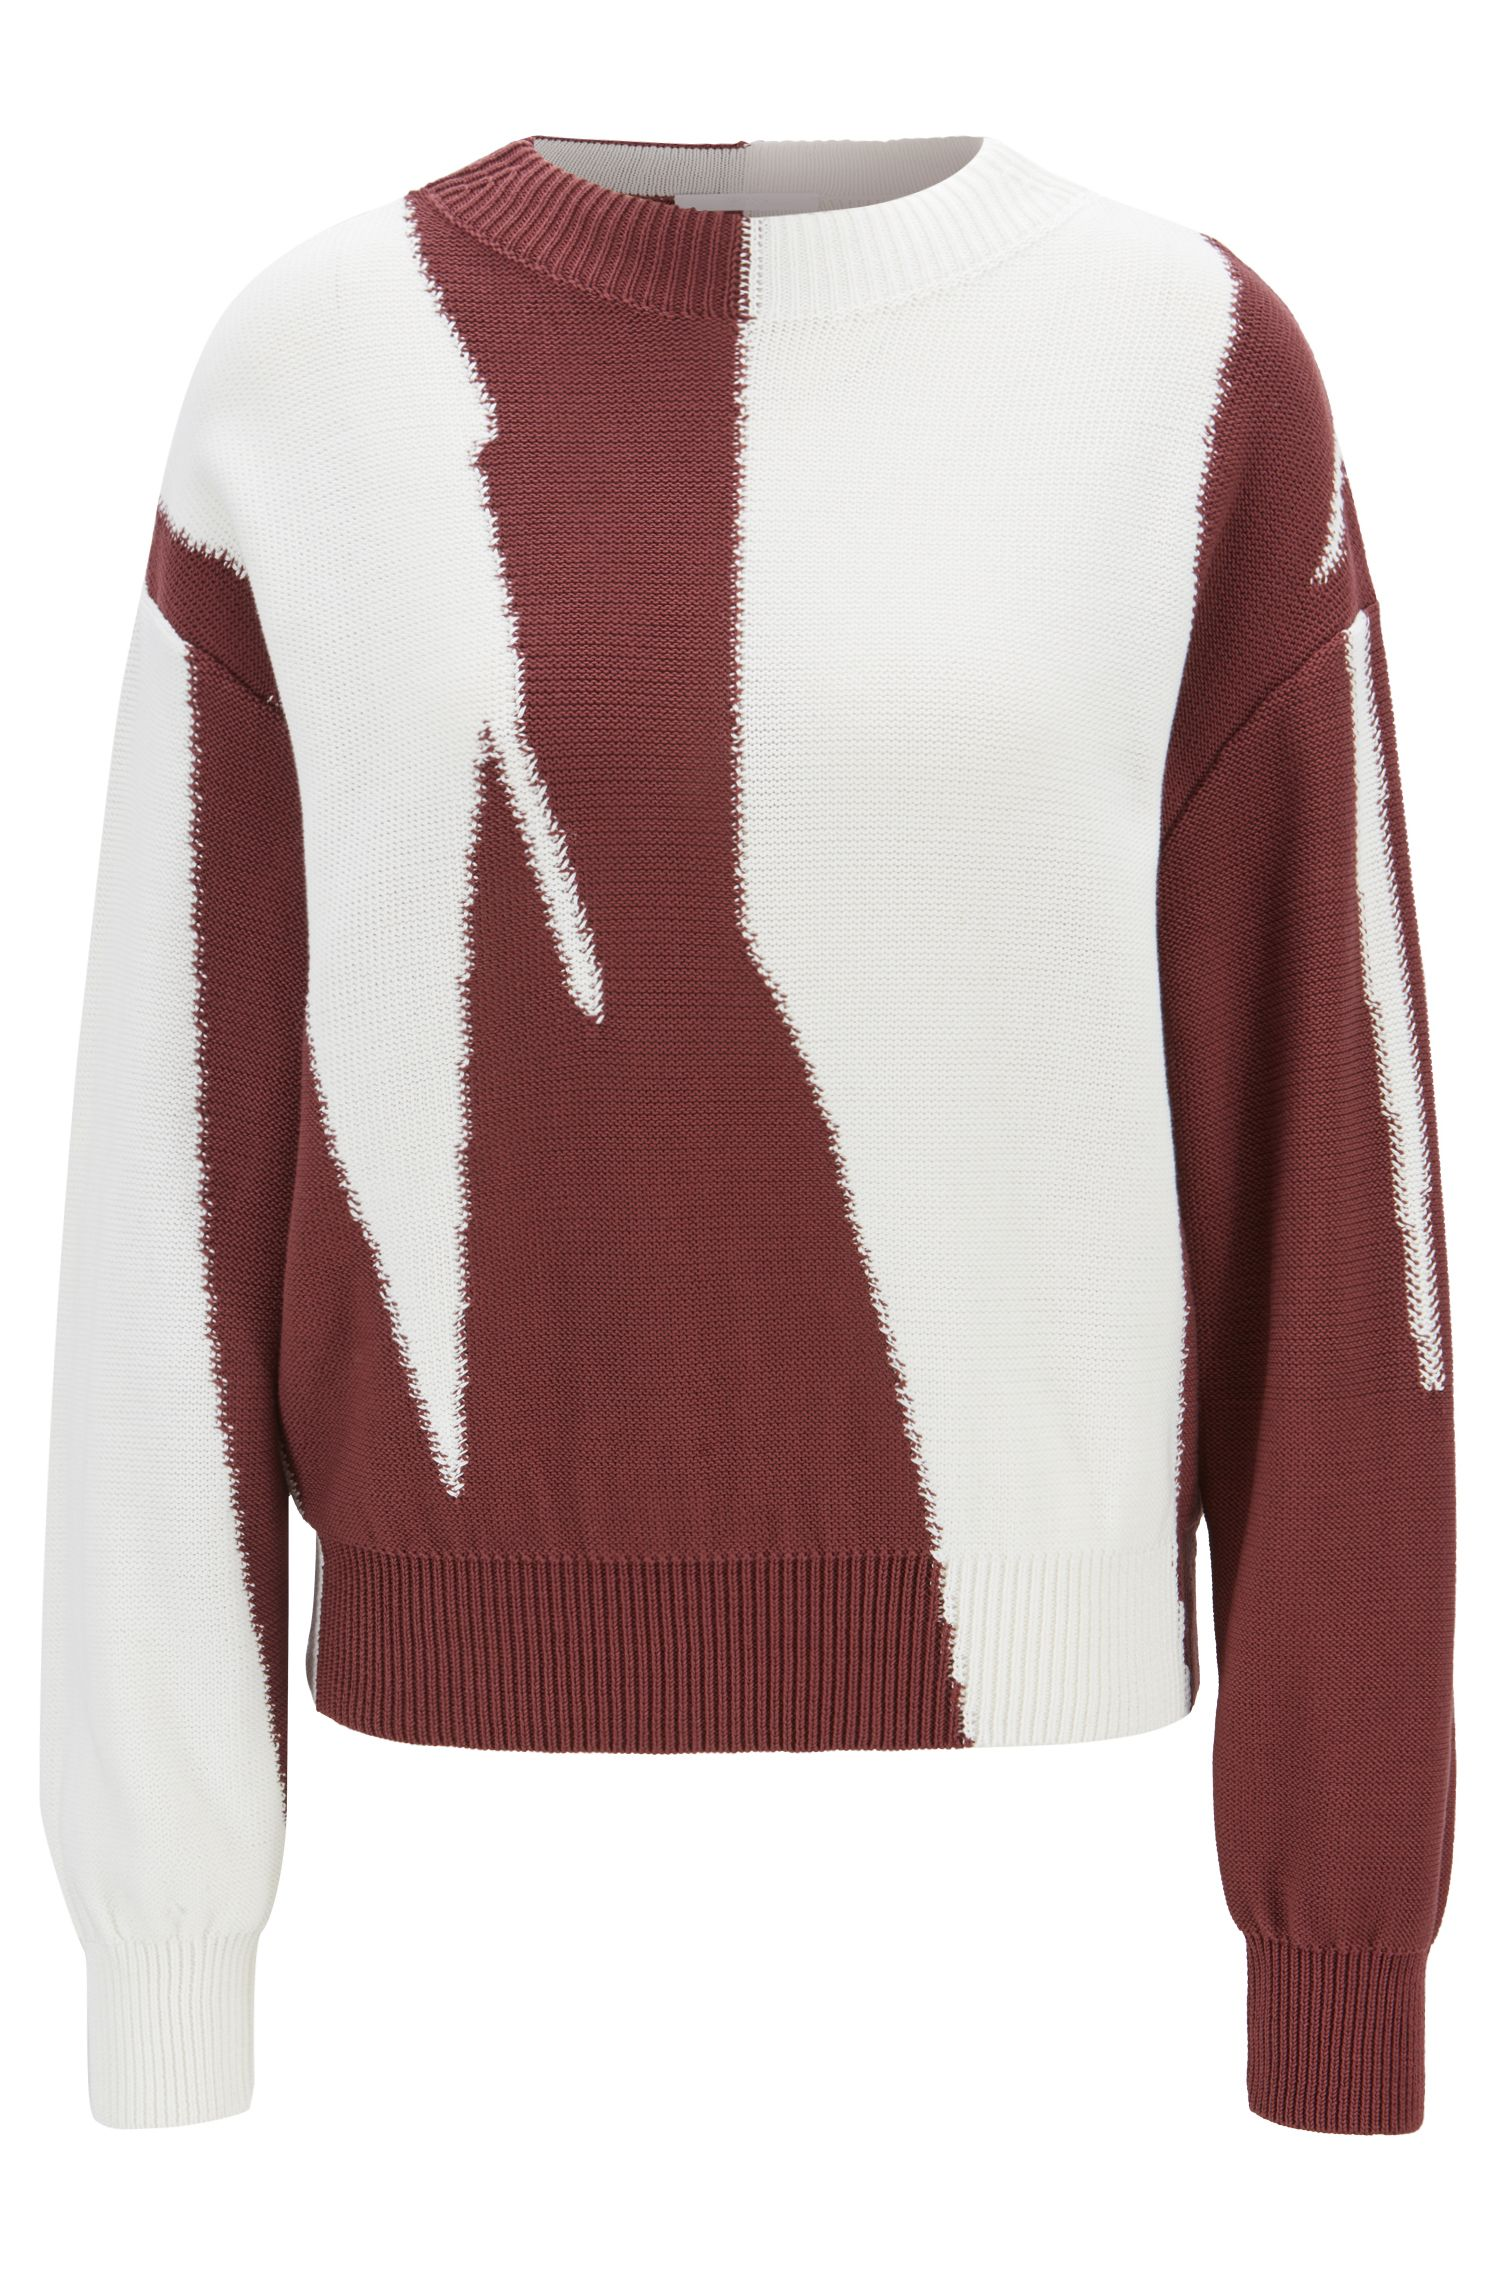 Intarsia color-block sweater in cotton, Patterned